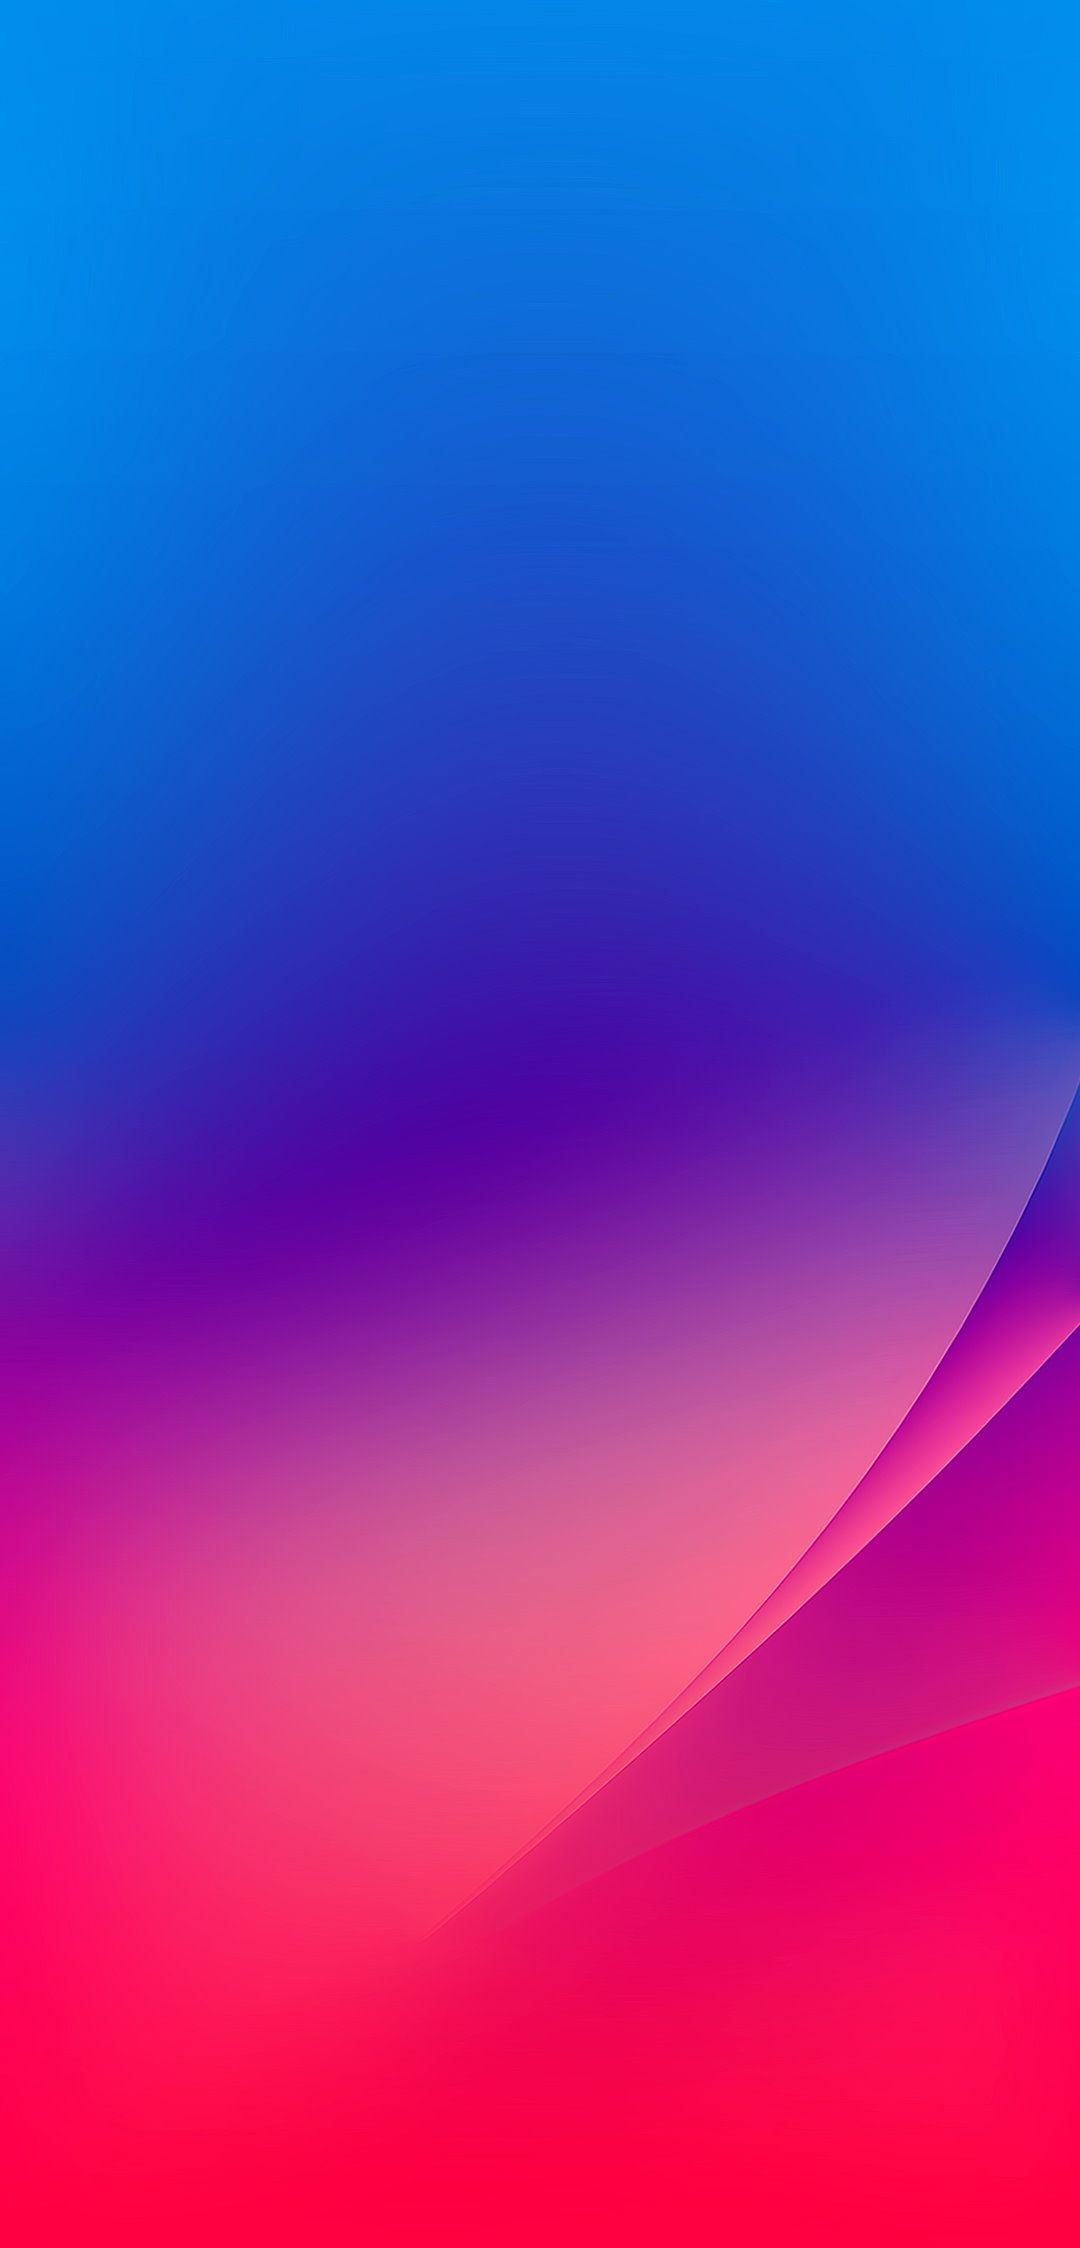 Wallpapers Xiaomi Mi Iphone Xr Wallpaper Hd 33733 Hd